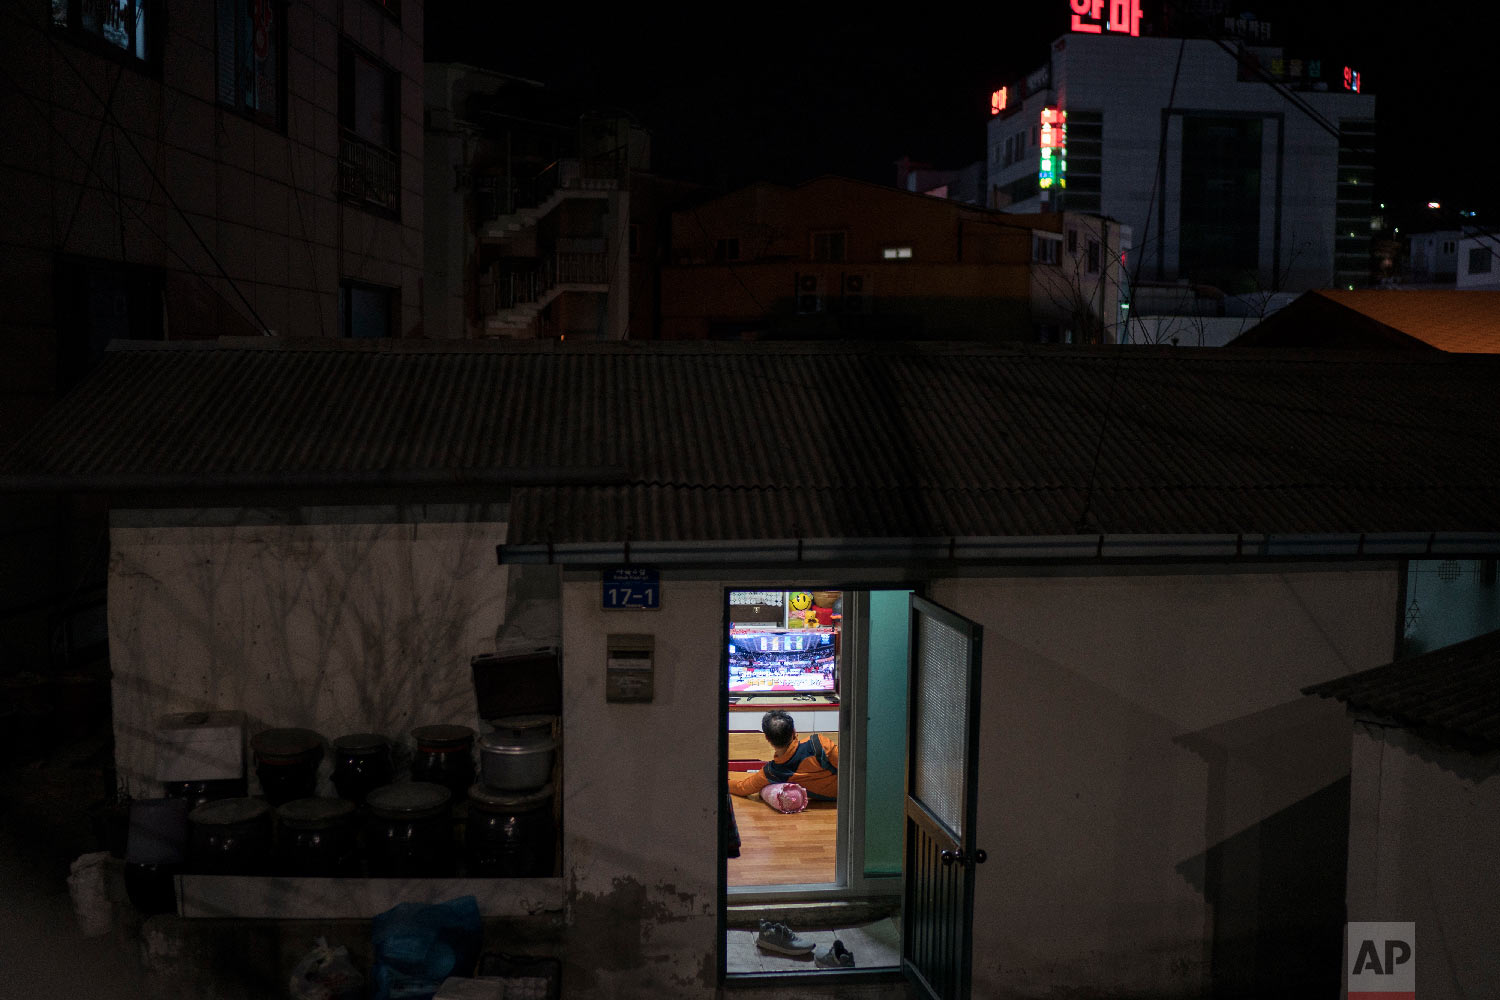 A man watches the Winter Olympics transmission on a television inside his house in the town of Sabuk, Jeongseon county, South Korea, Thursday, Feb. 15, 2018. (AP Photo/Felipe Dana)